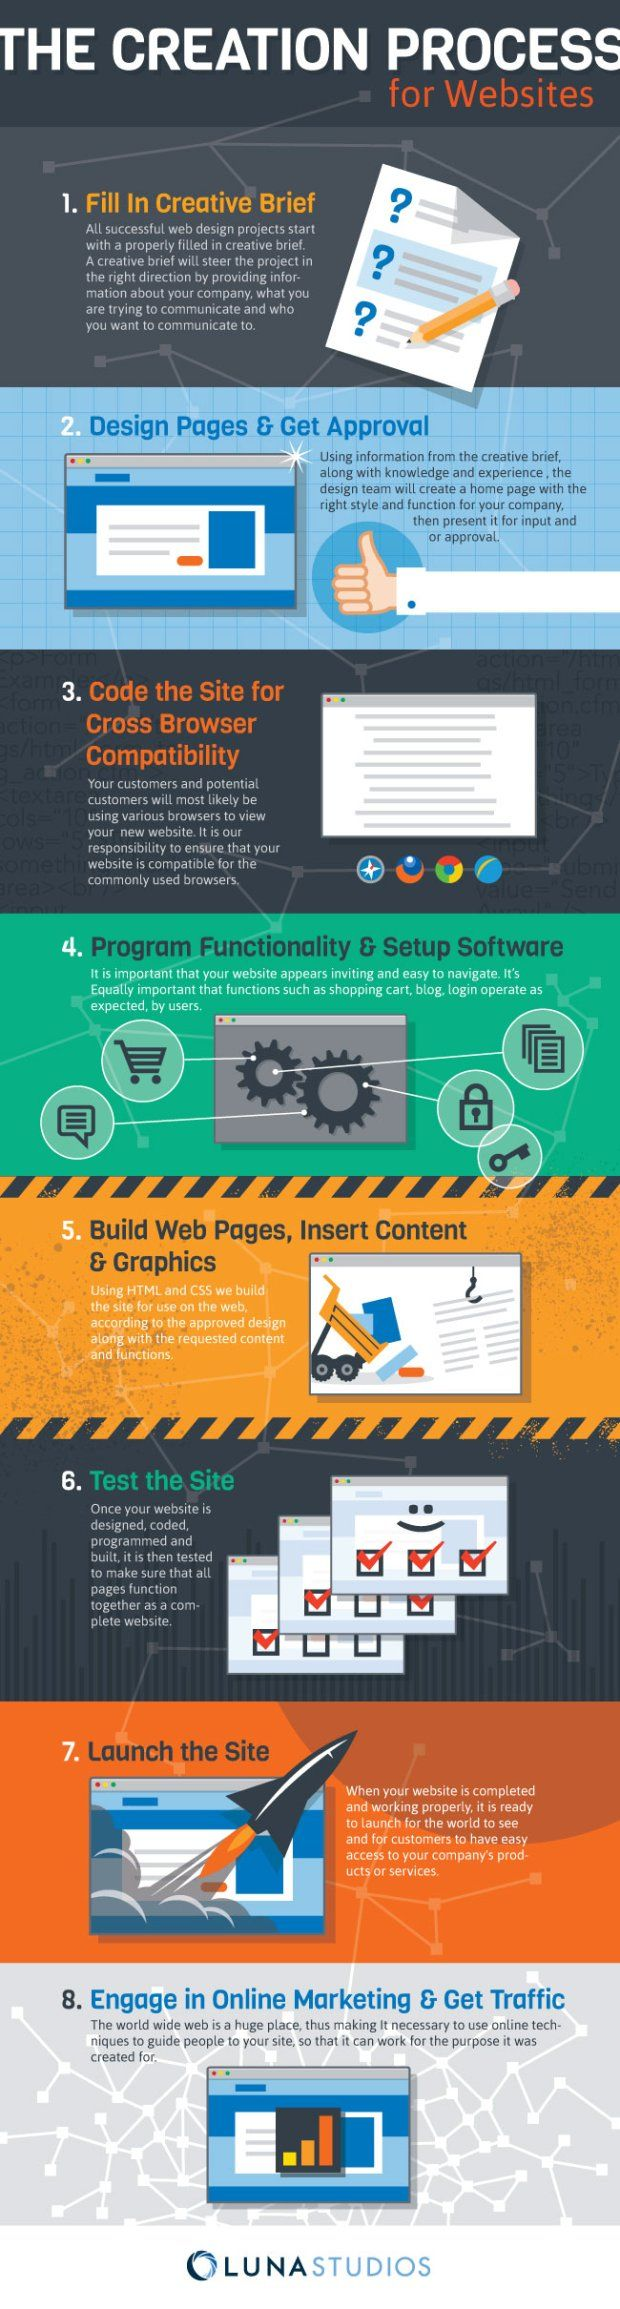 Web Design Process 620x2309 The Creation Process for Websites | Infographic